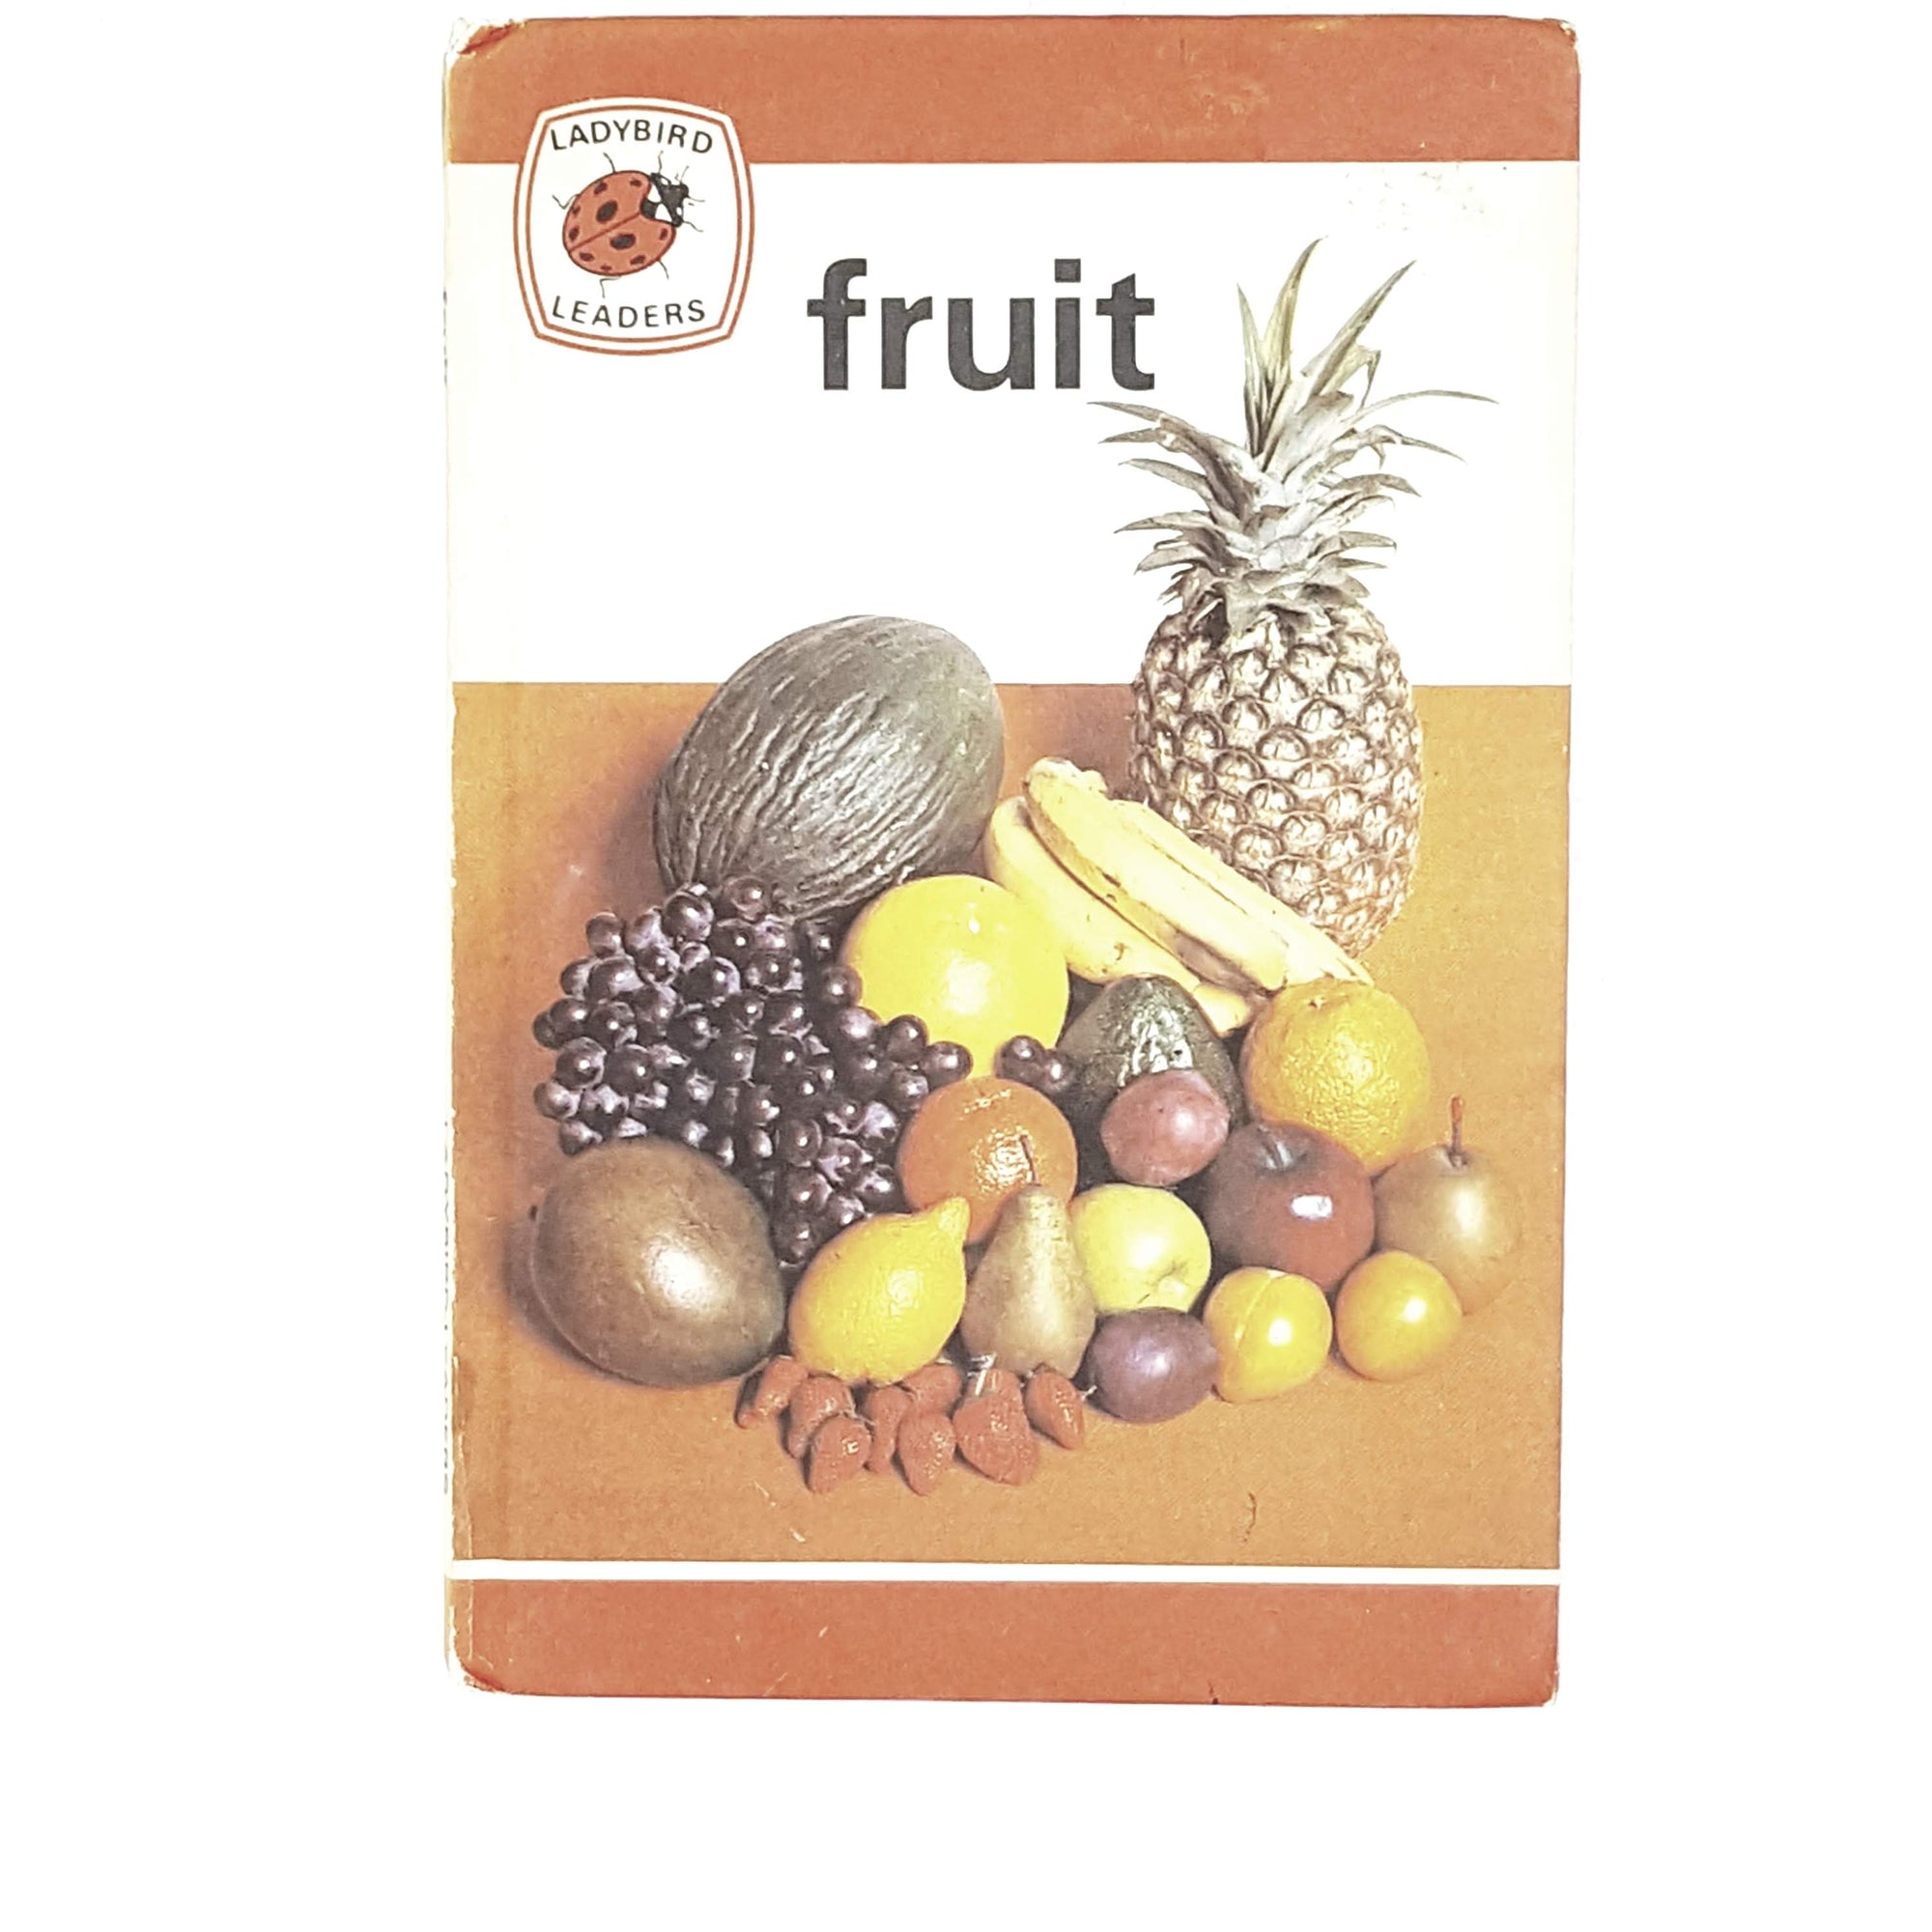 ladybird-leaders-fruit-1979-country-house-library